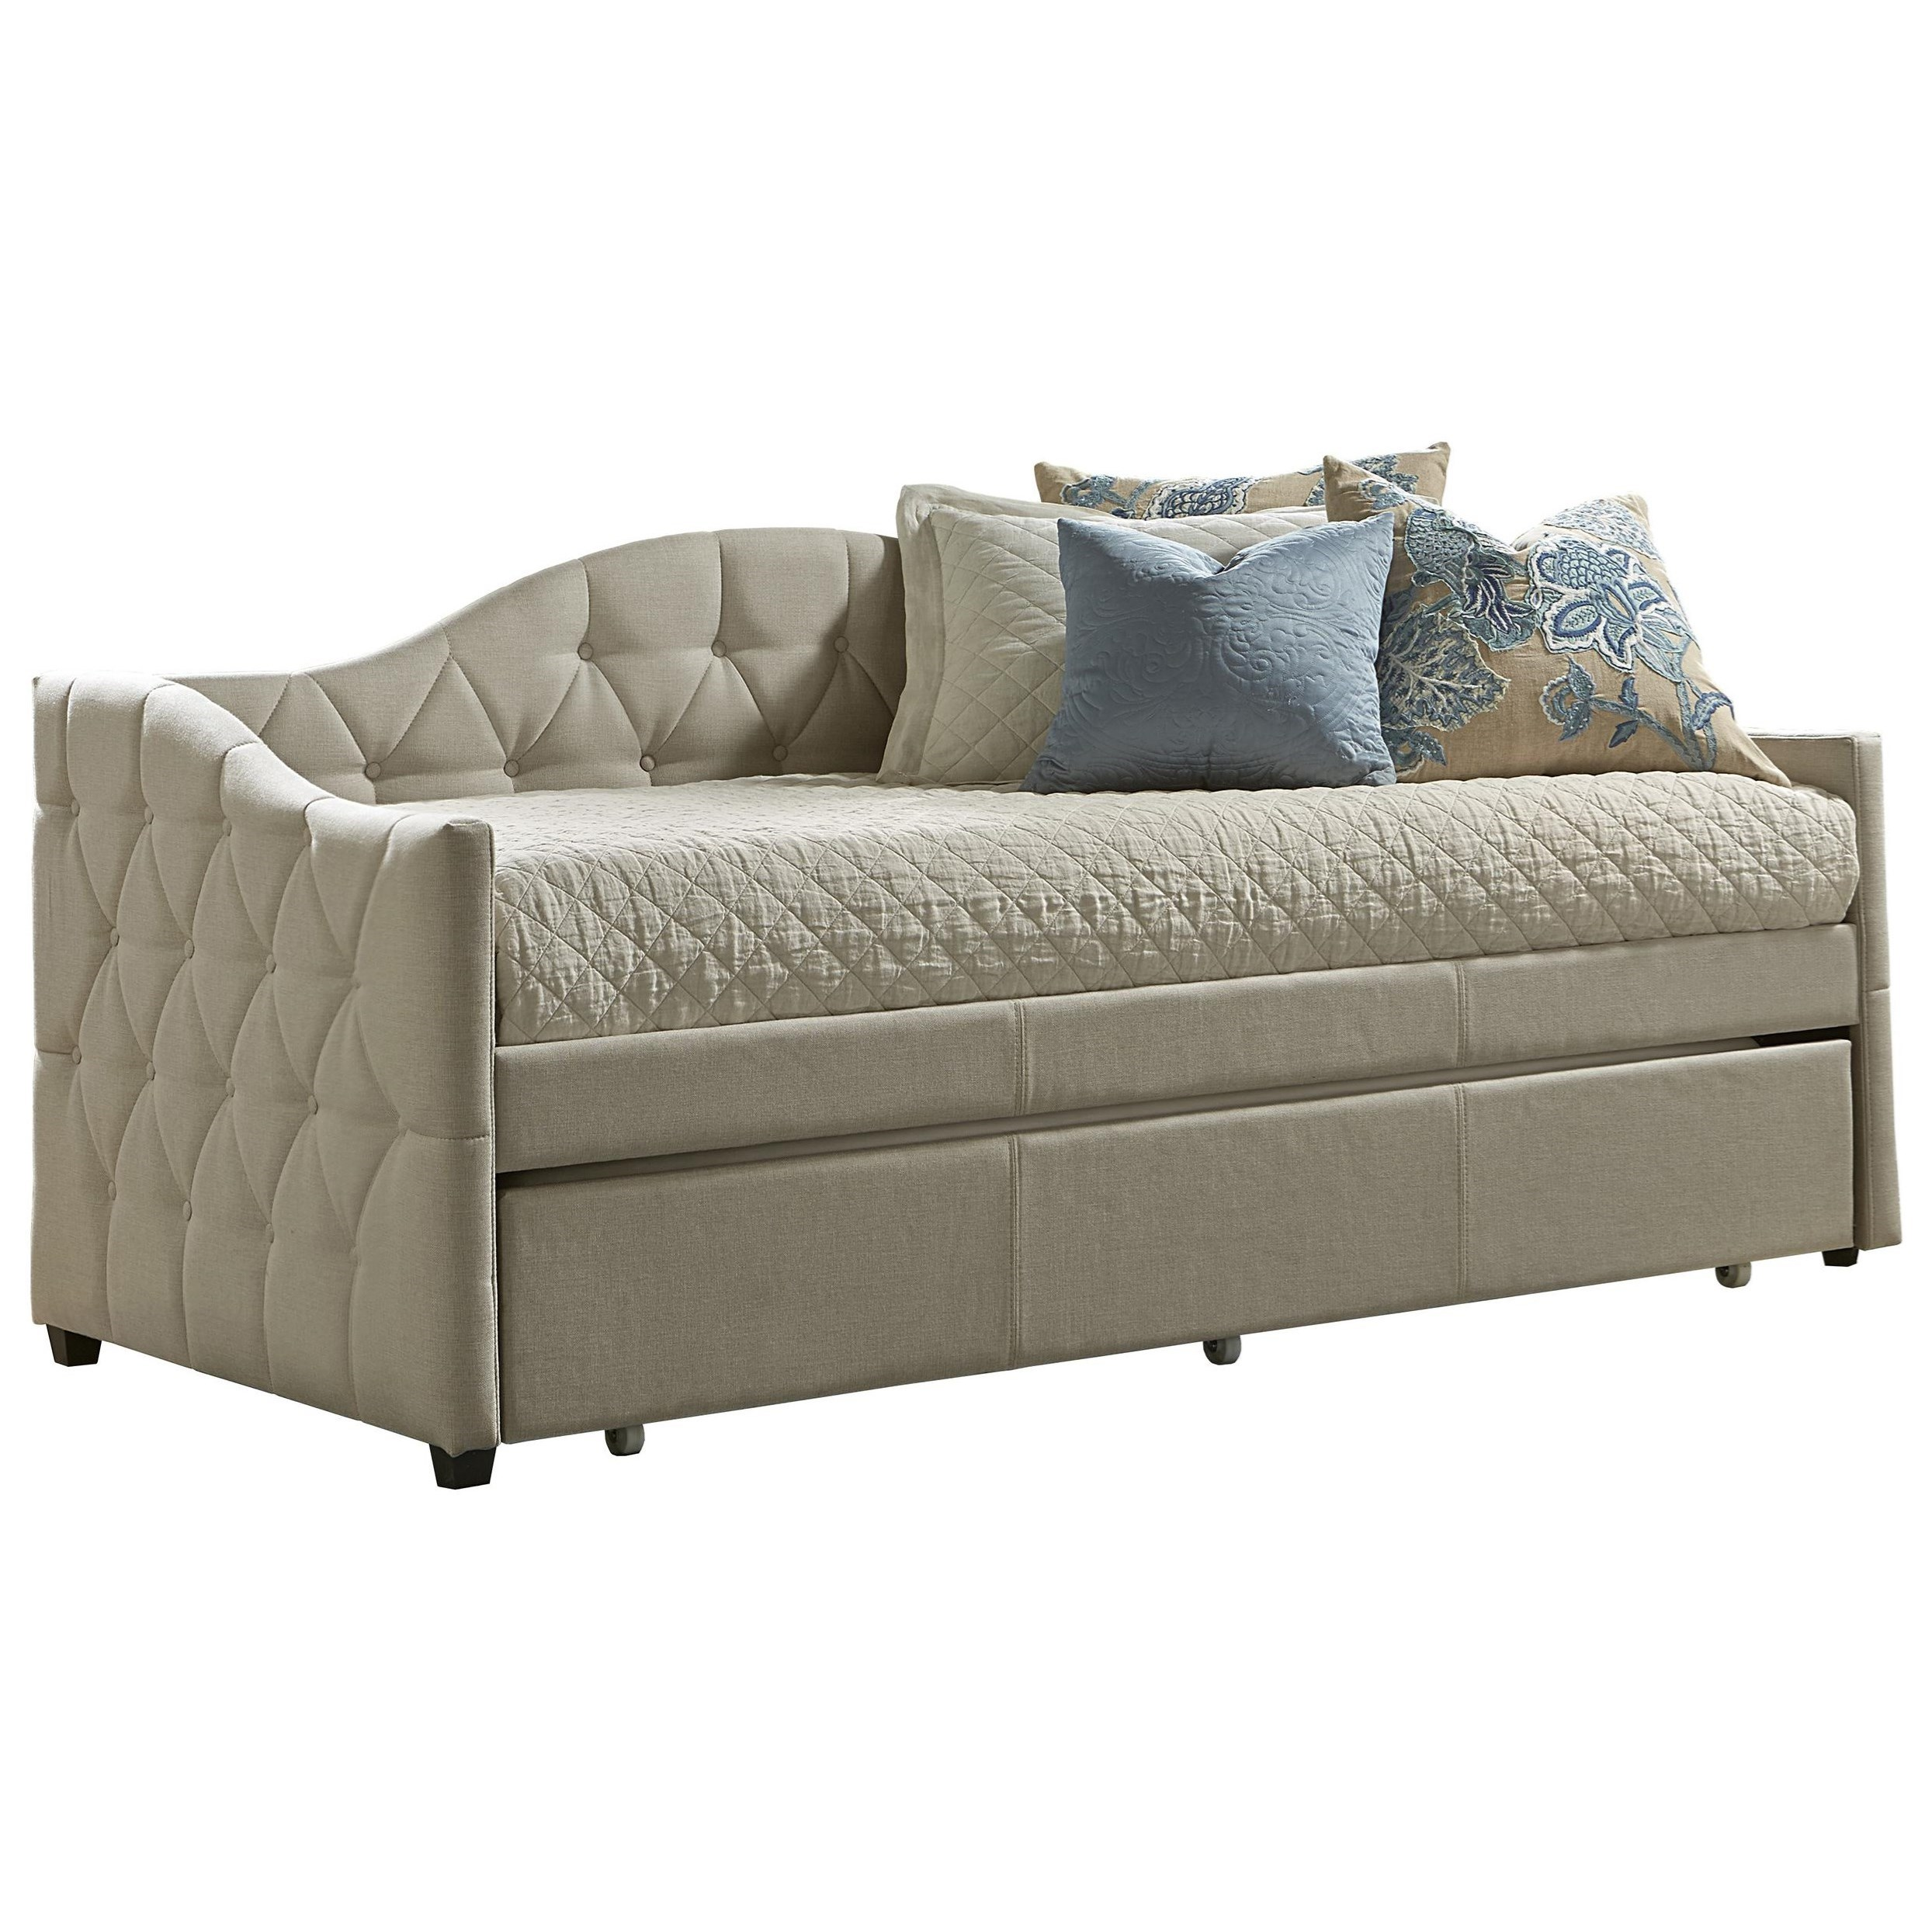 Hillsdale Daybeds Jaylyn Upholstered Daybed - Item Number: 1125DB